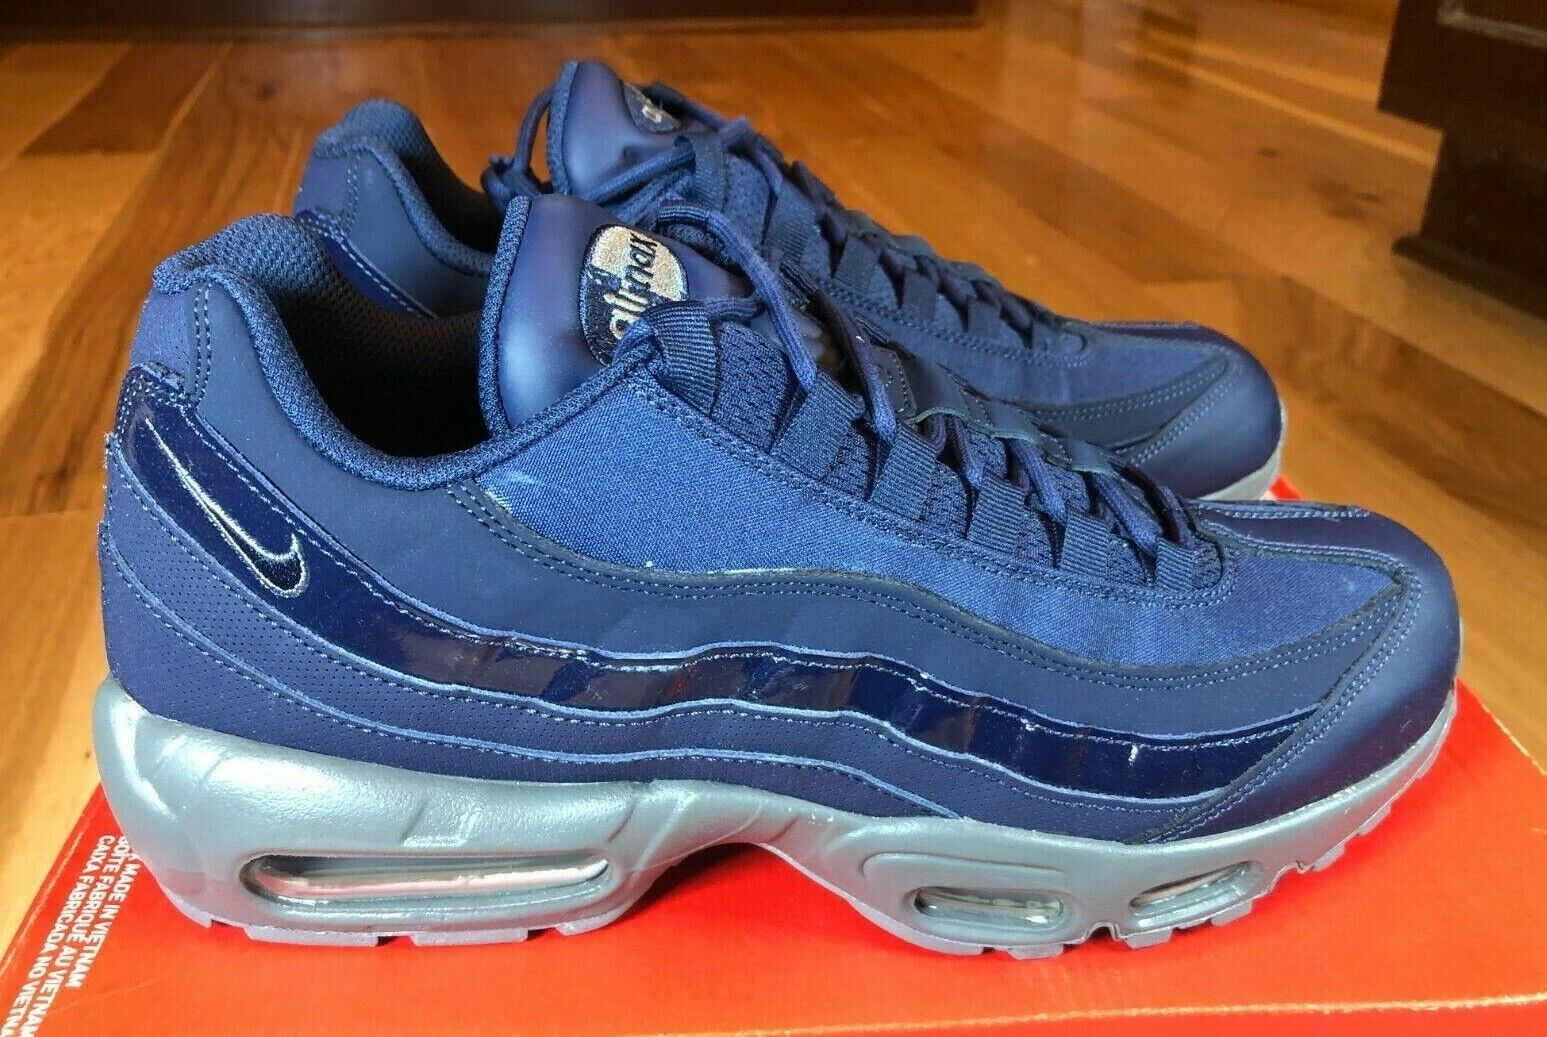 Size 9.5 - Nike Air Max 95 Obsidian 2018 for sale online   eBay